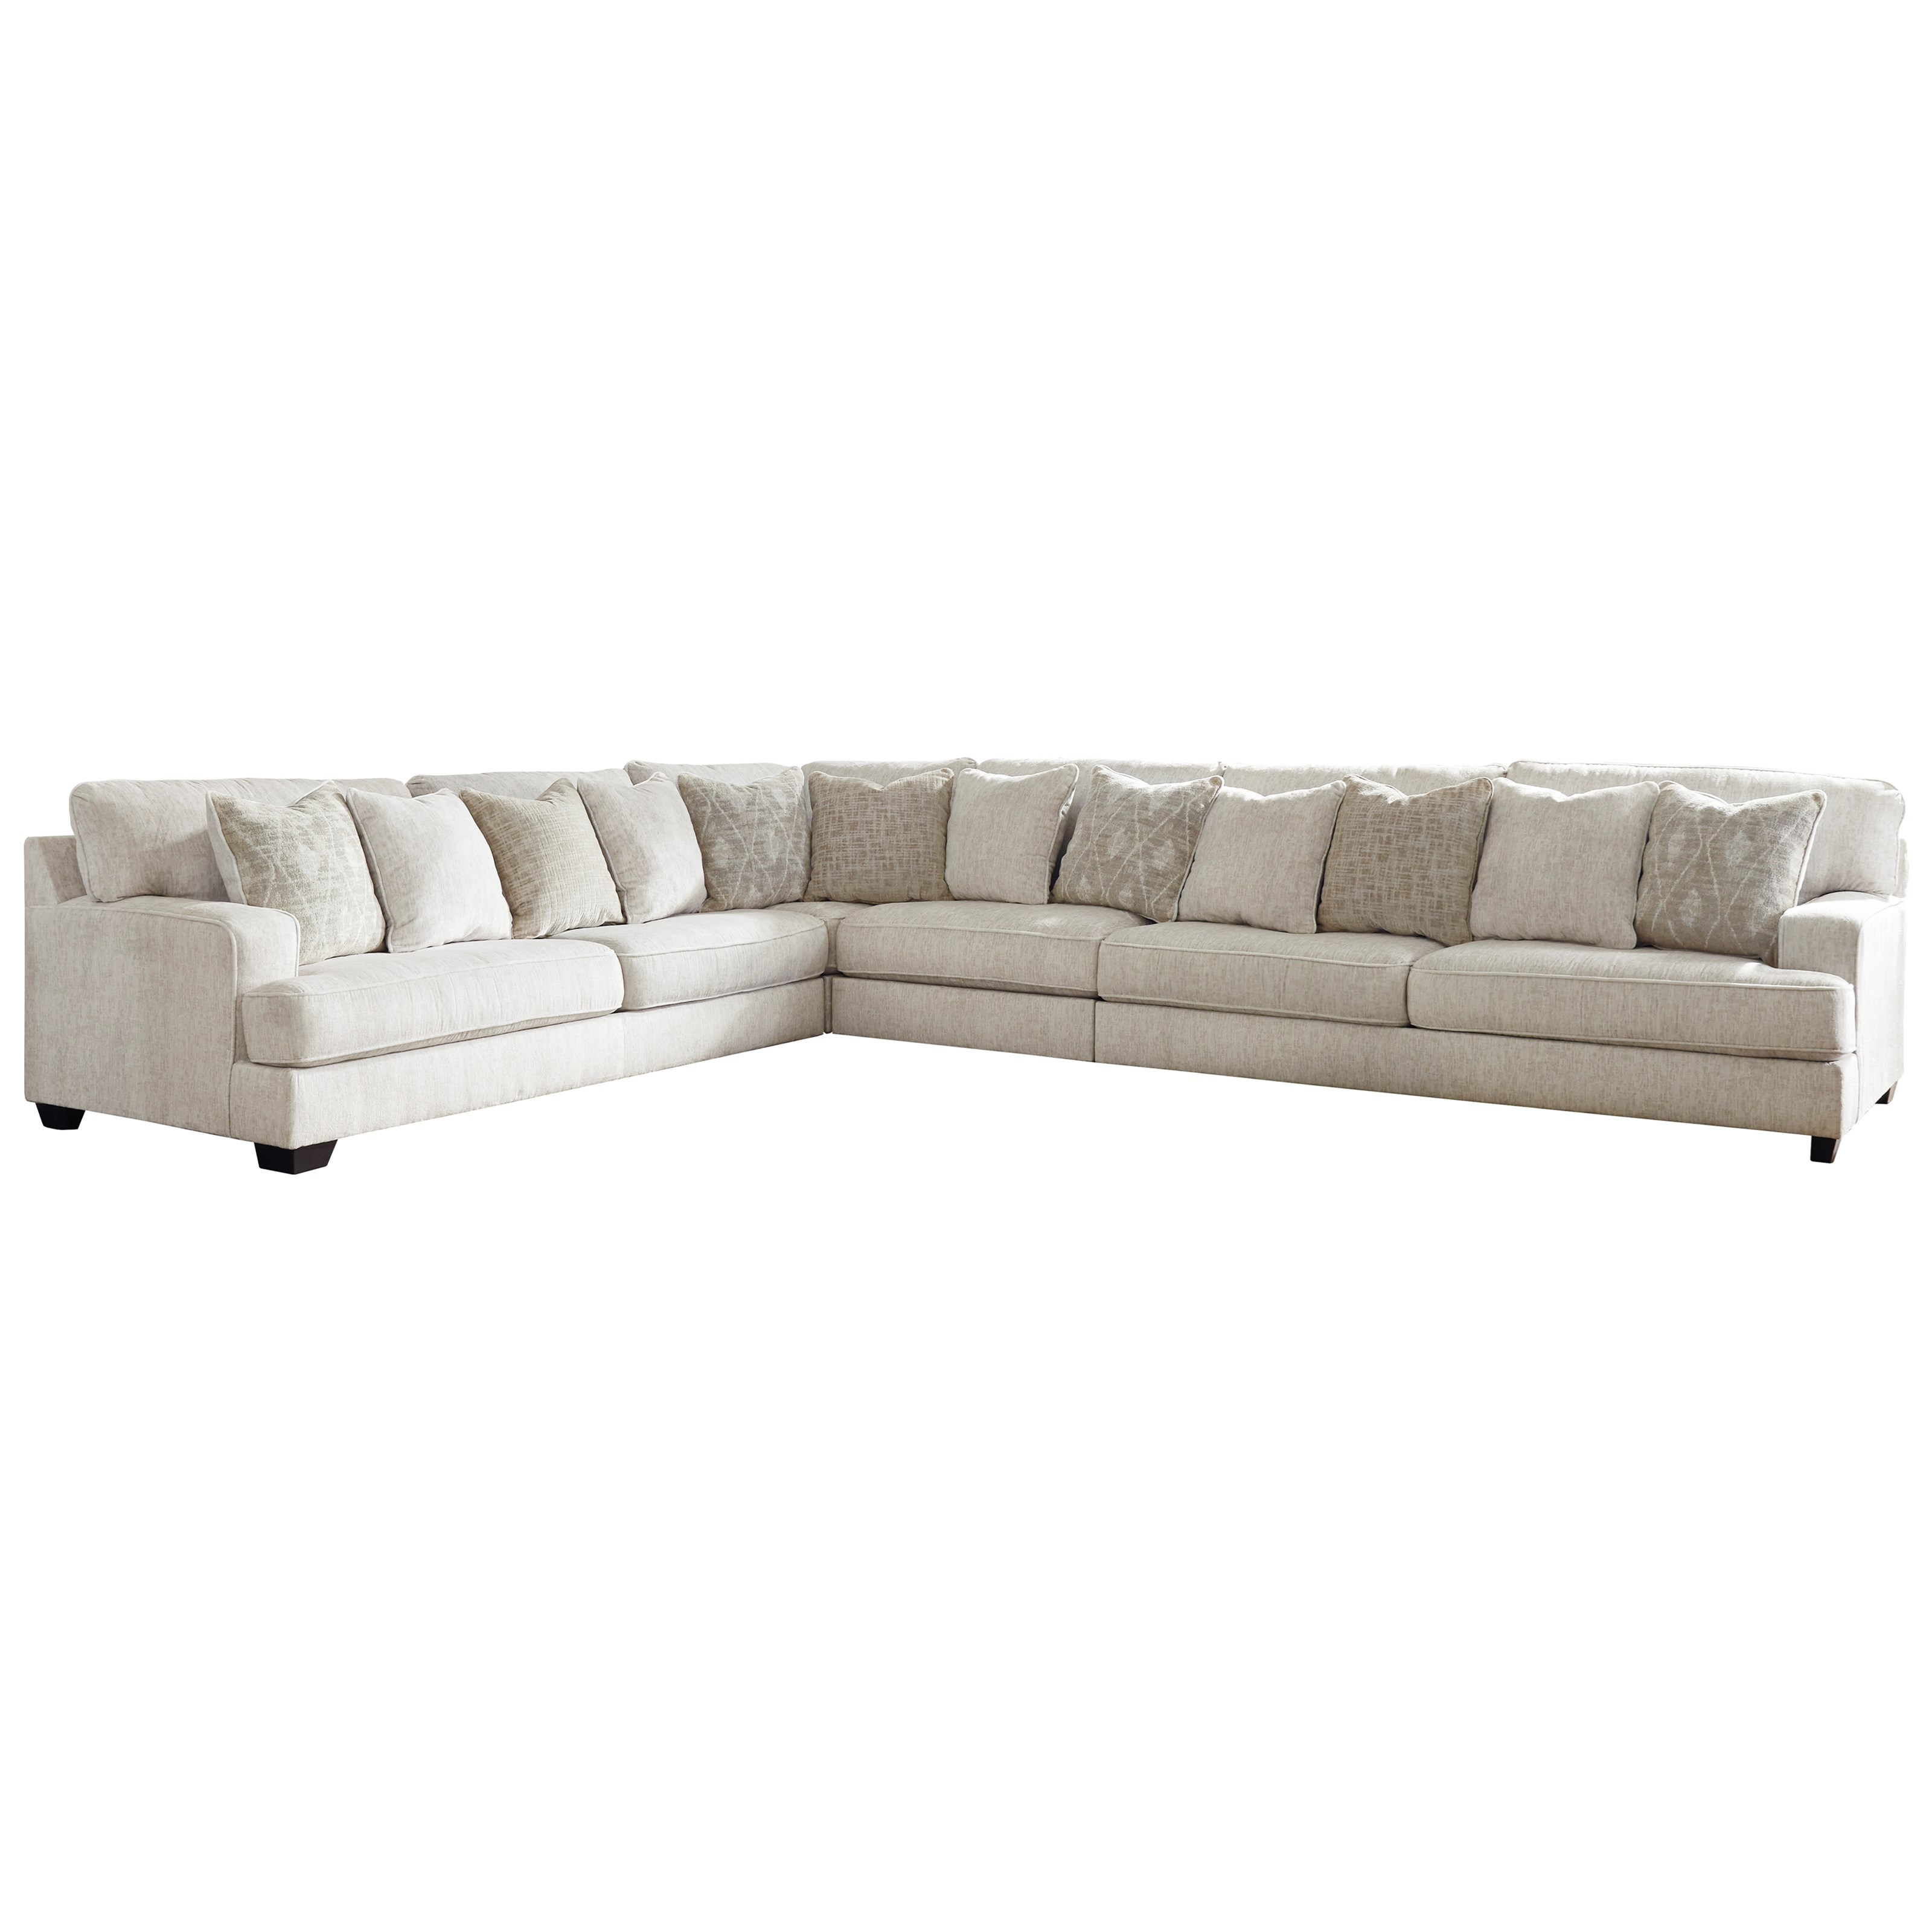 Rawcliffe 4-Piece Sectional by Signature Design by Ashley at Beck's Furniture